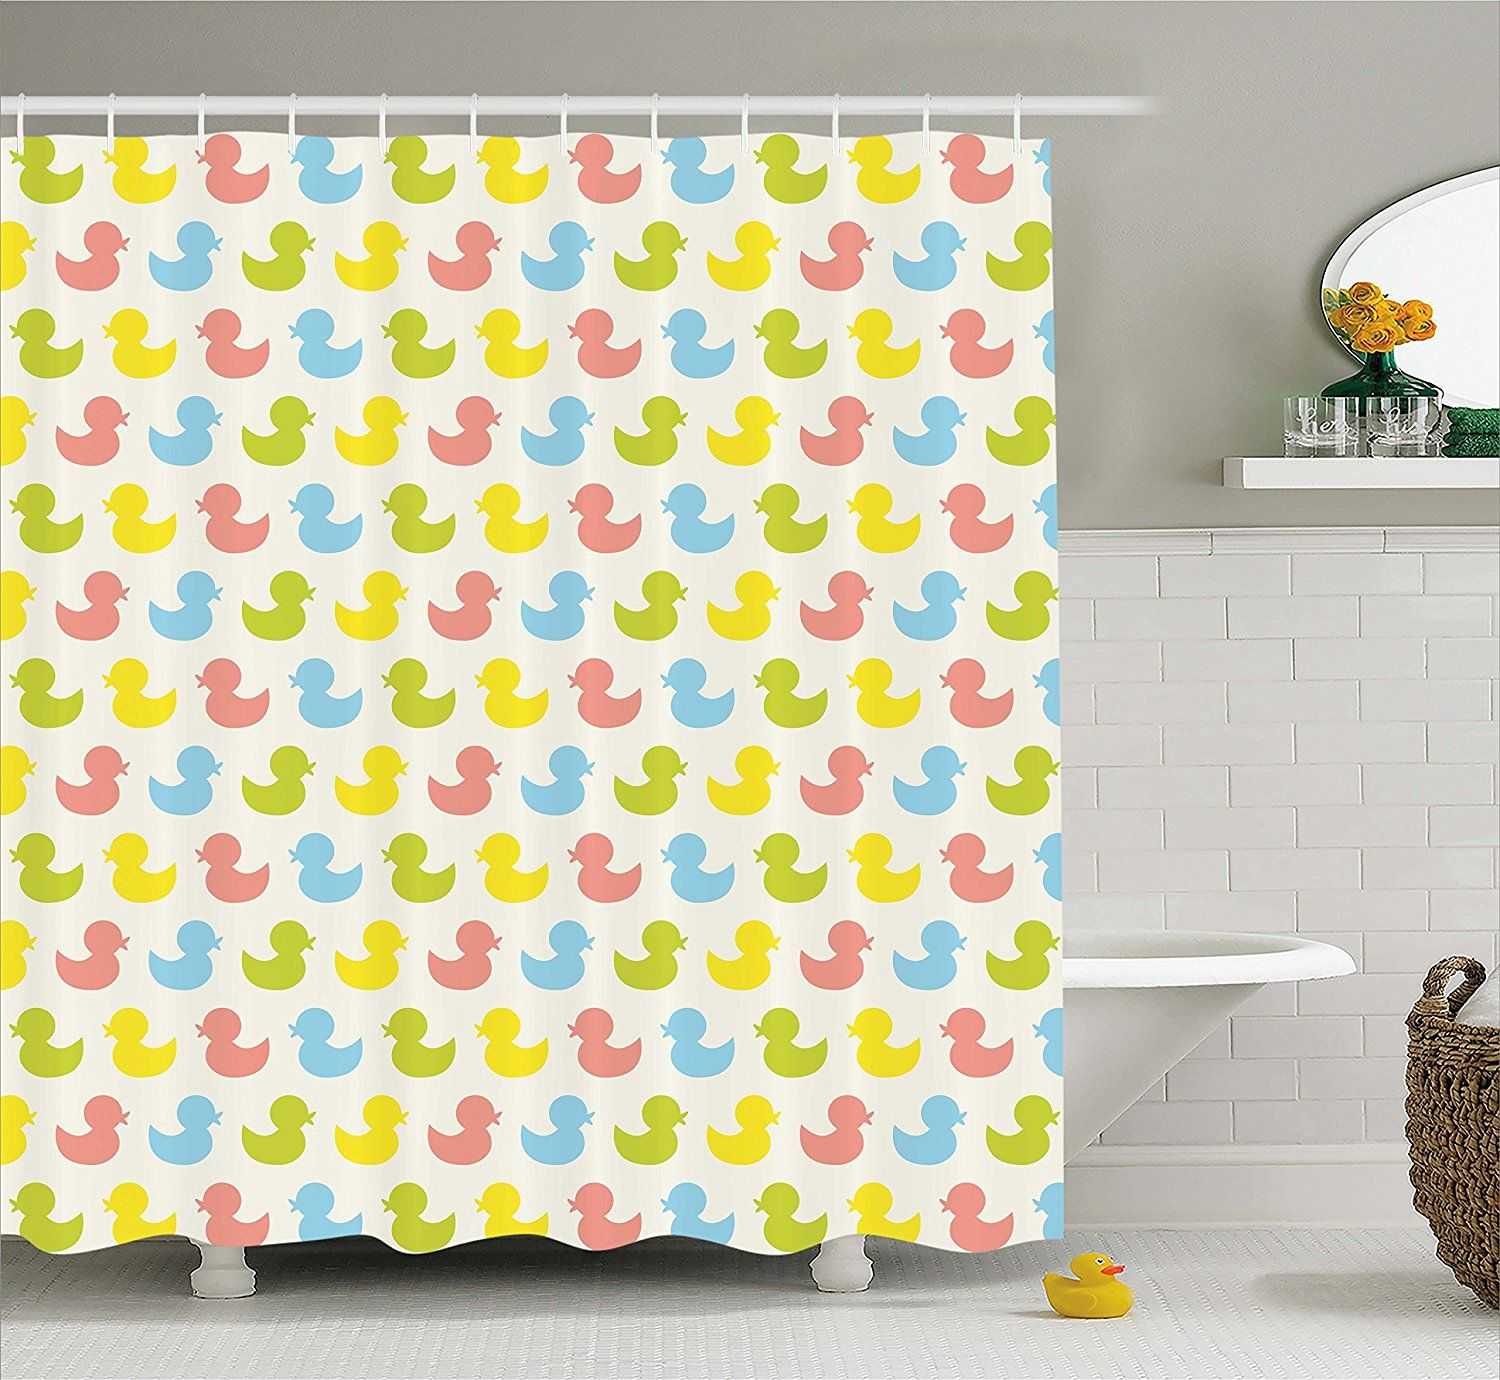 Amazon Rubber Duck Shower Curtain Set By Ambesonne Colorful Ducklings Baby Animals Theme Pastel Girls Boys Newborn Pattern Fabric Bathroom Decor With